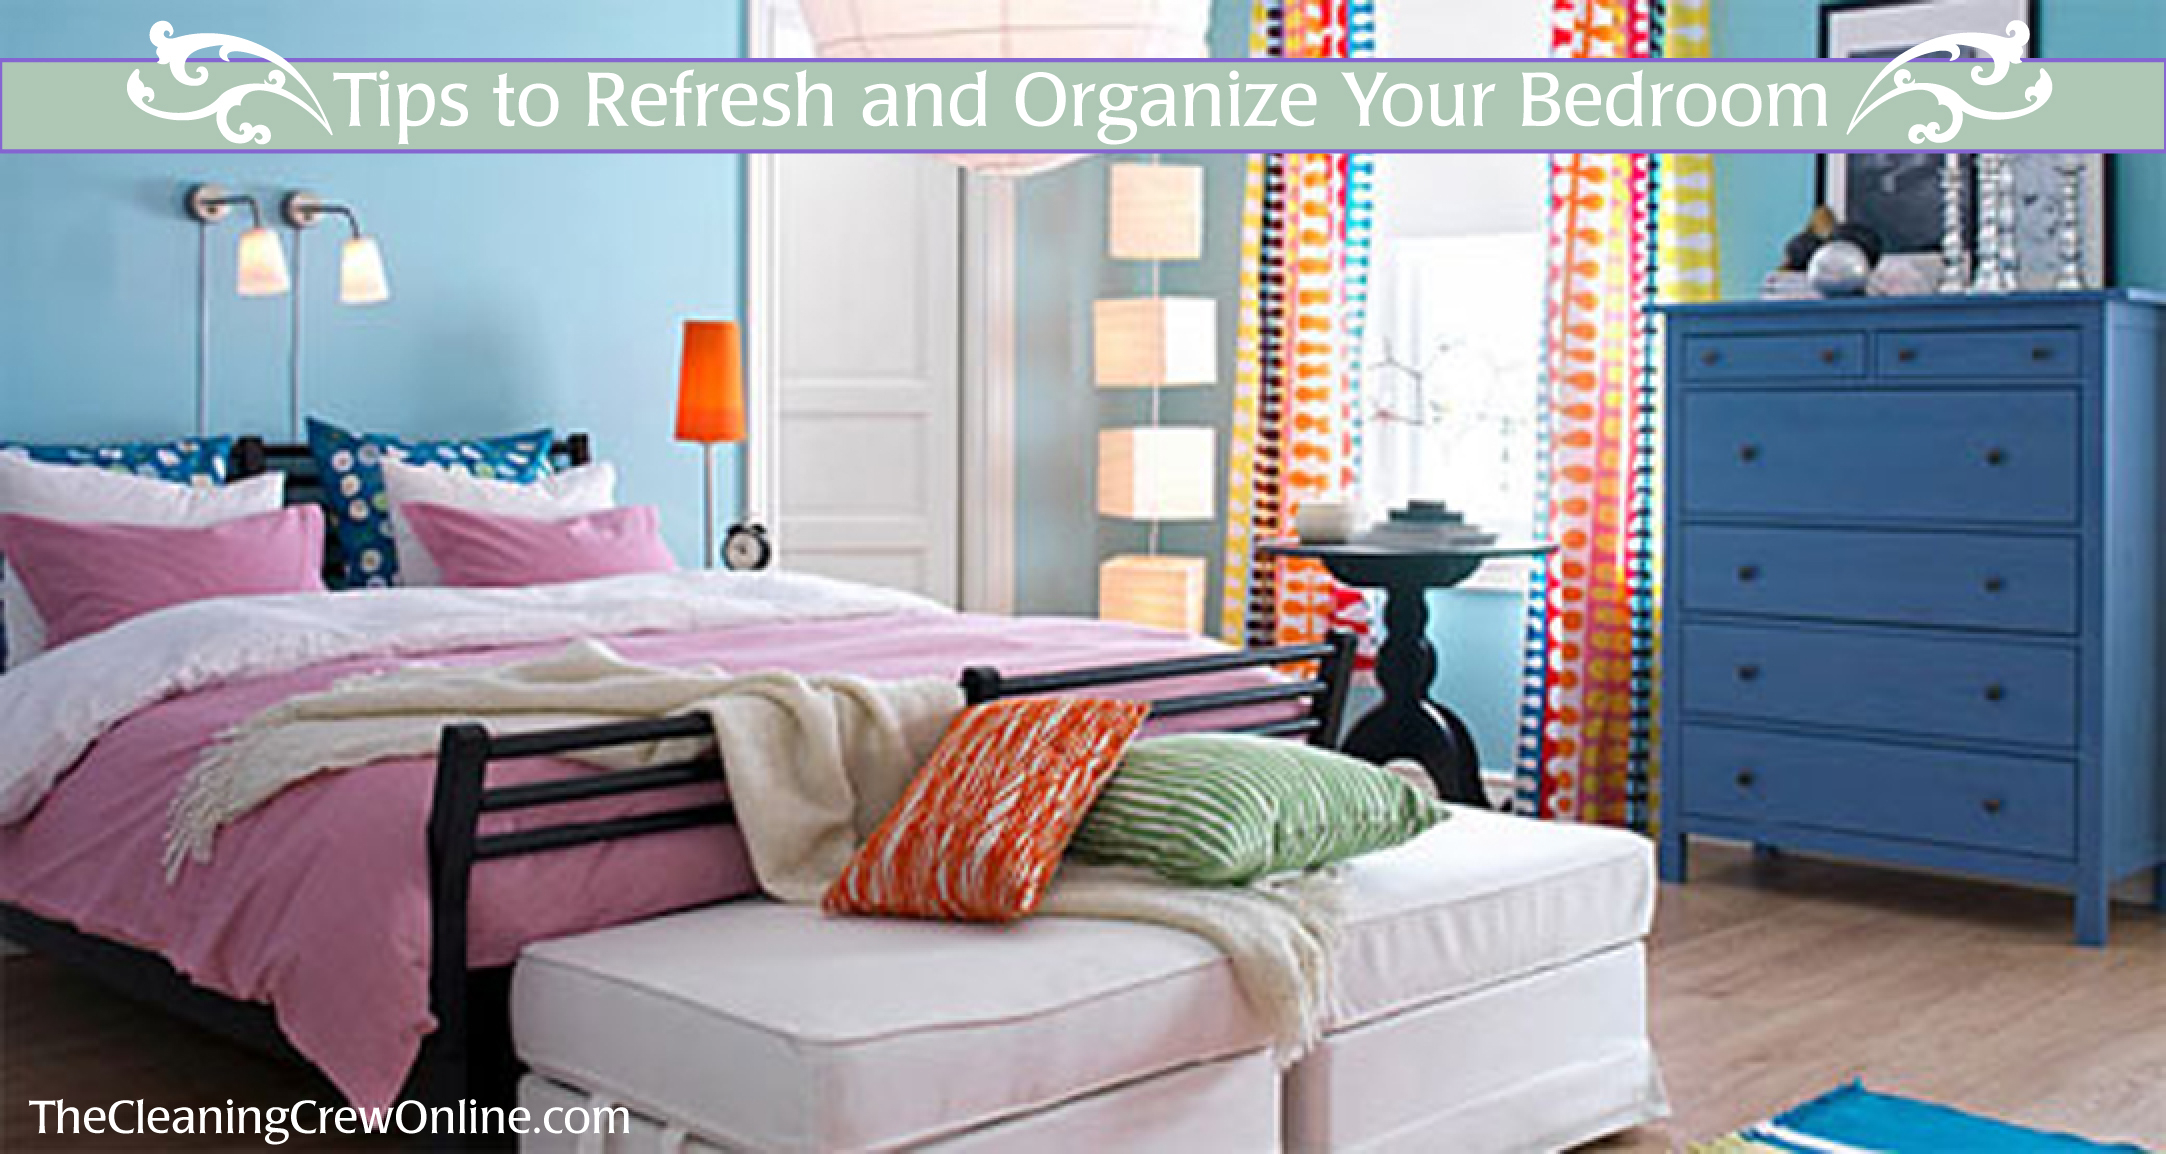 Inspirational Tips To Refresh And Organize Your Bedroom | The Cleaning Crew, Llc throughout How To Arrange Your Bedroom